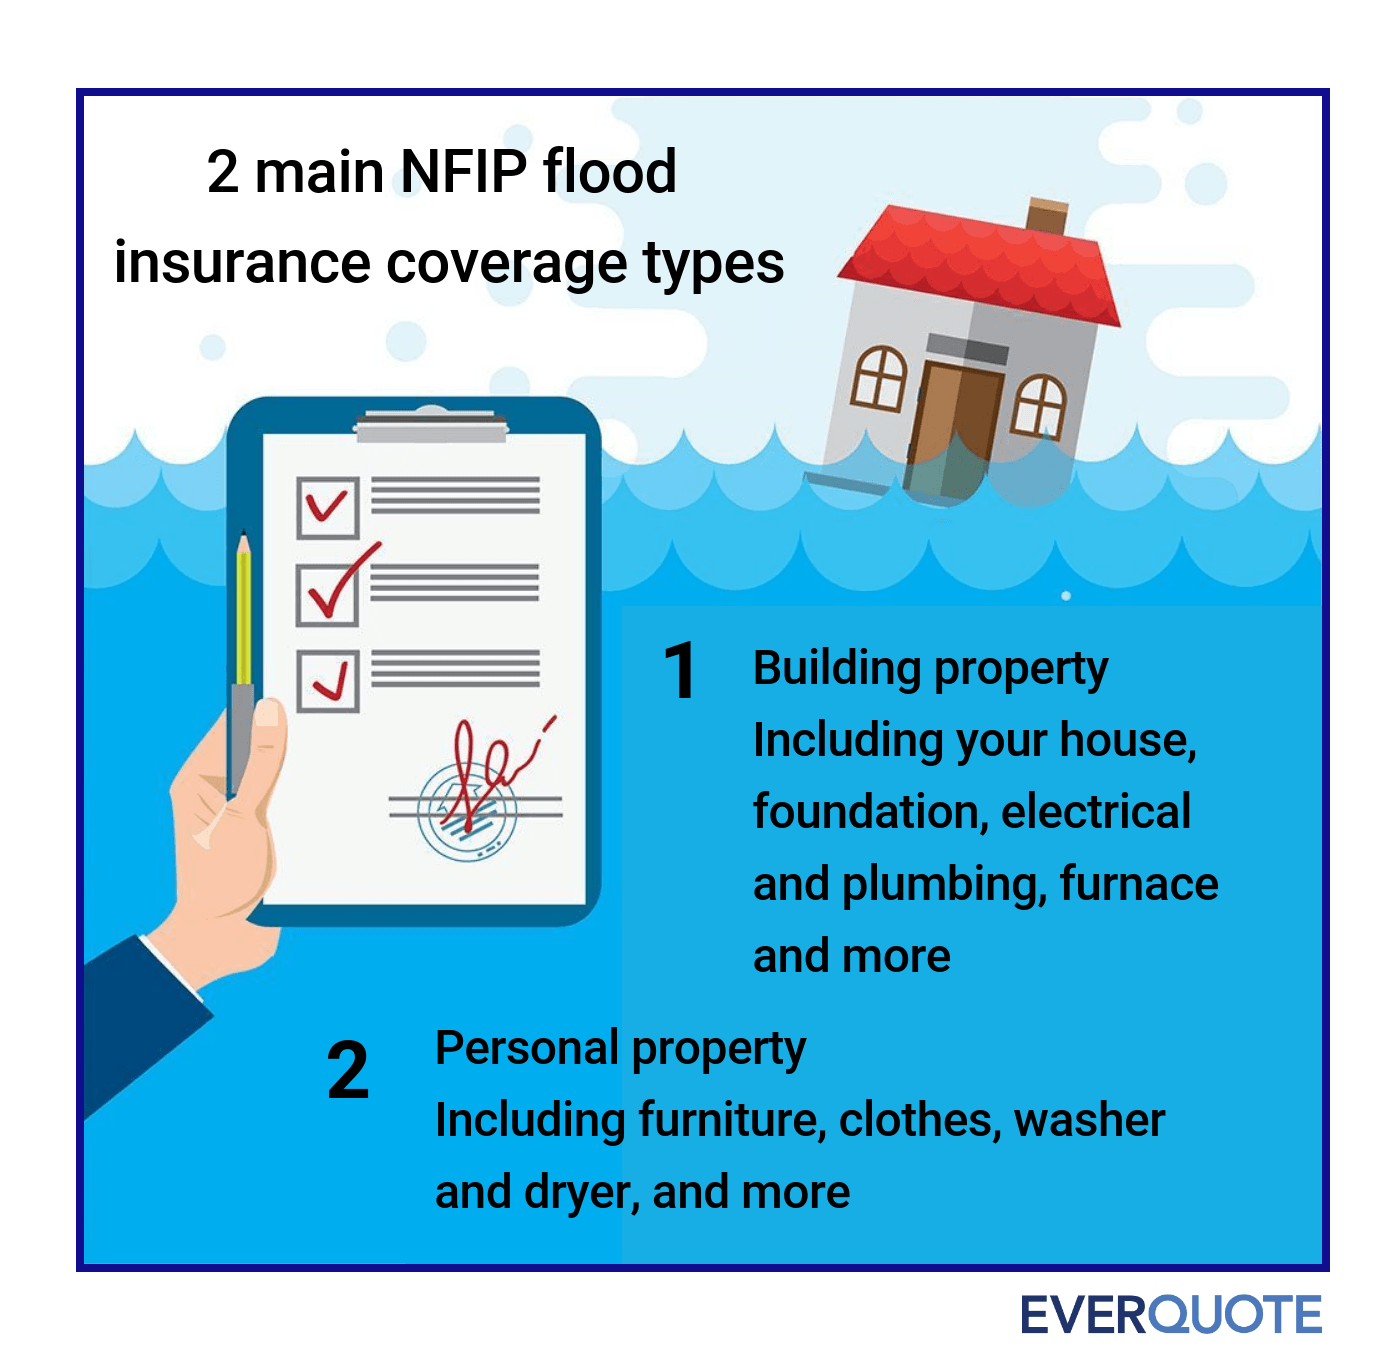 2 main types of NFIP flood insurance